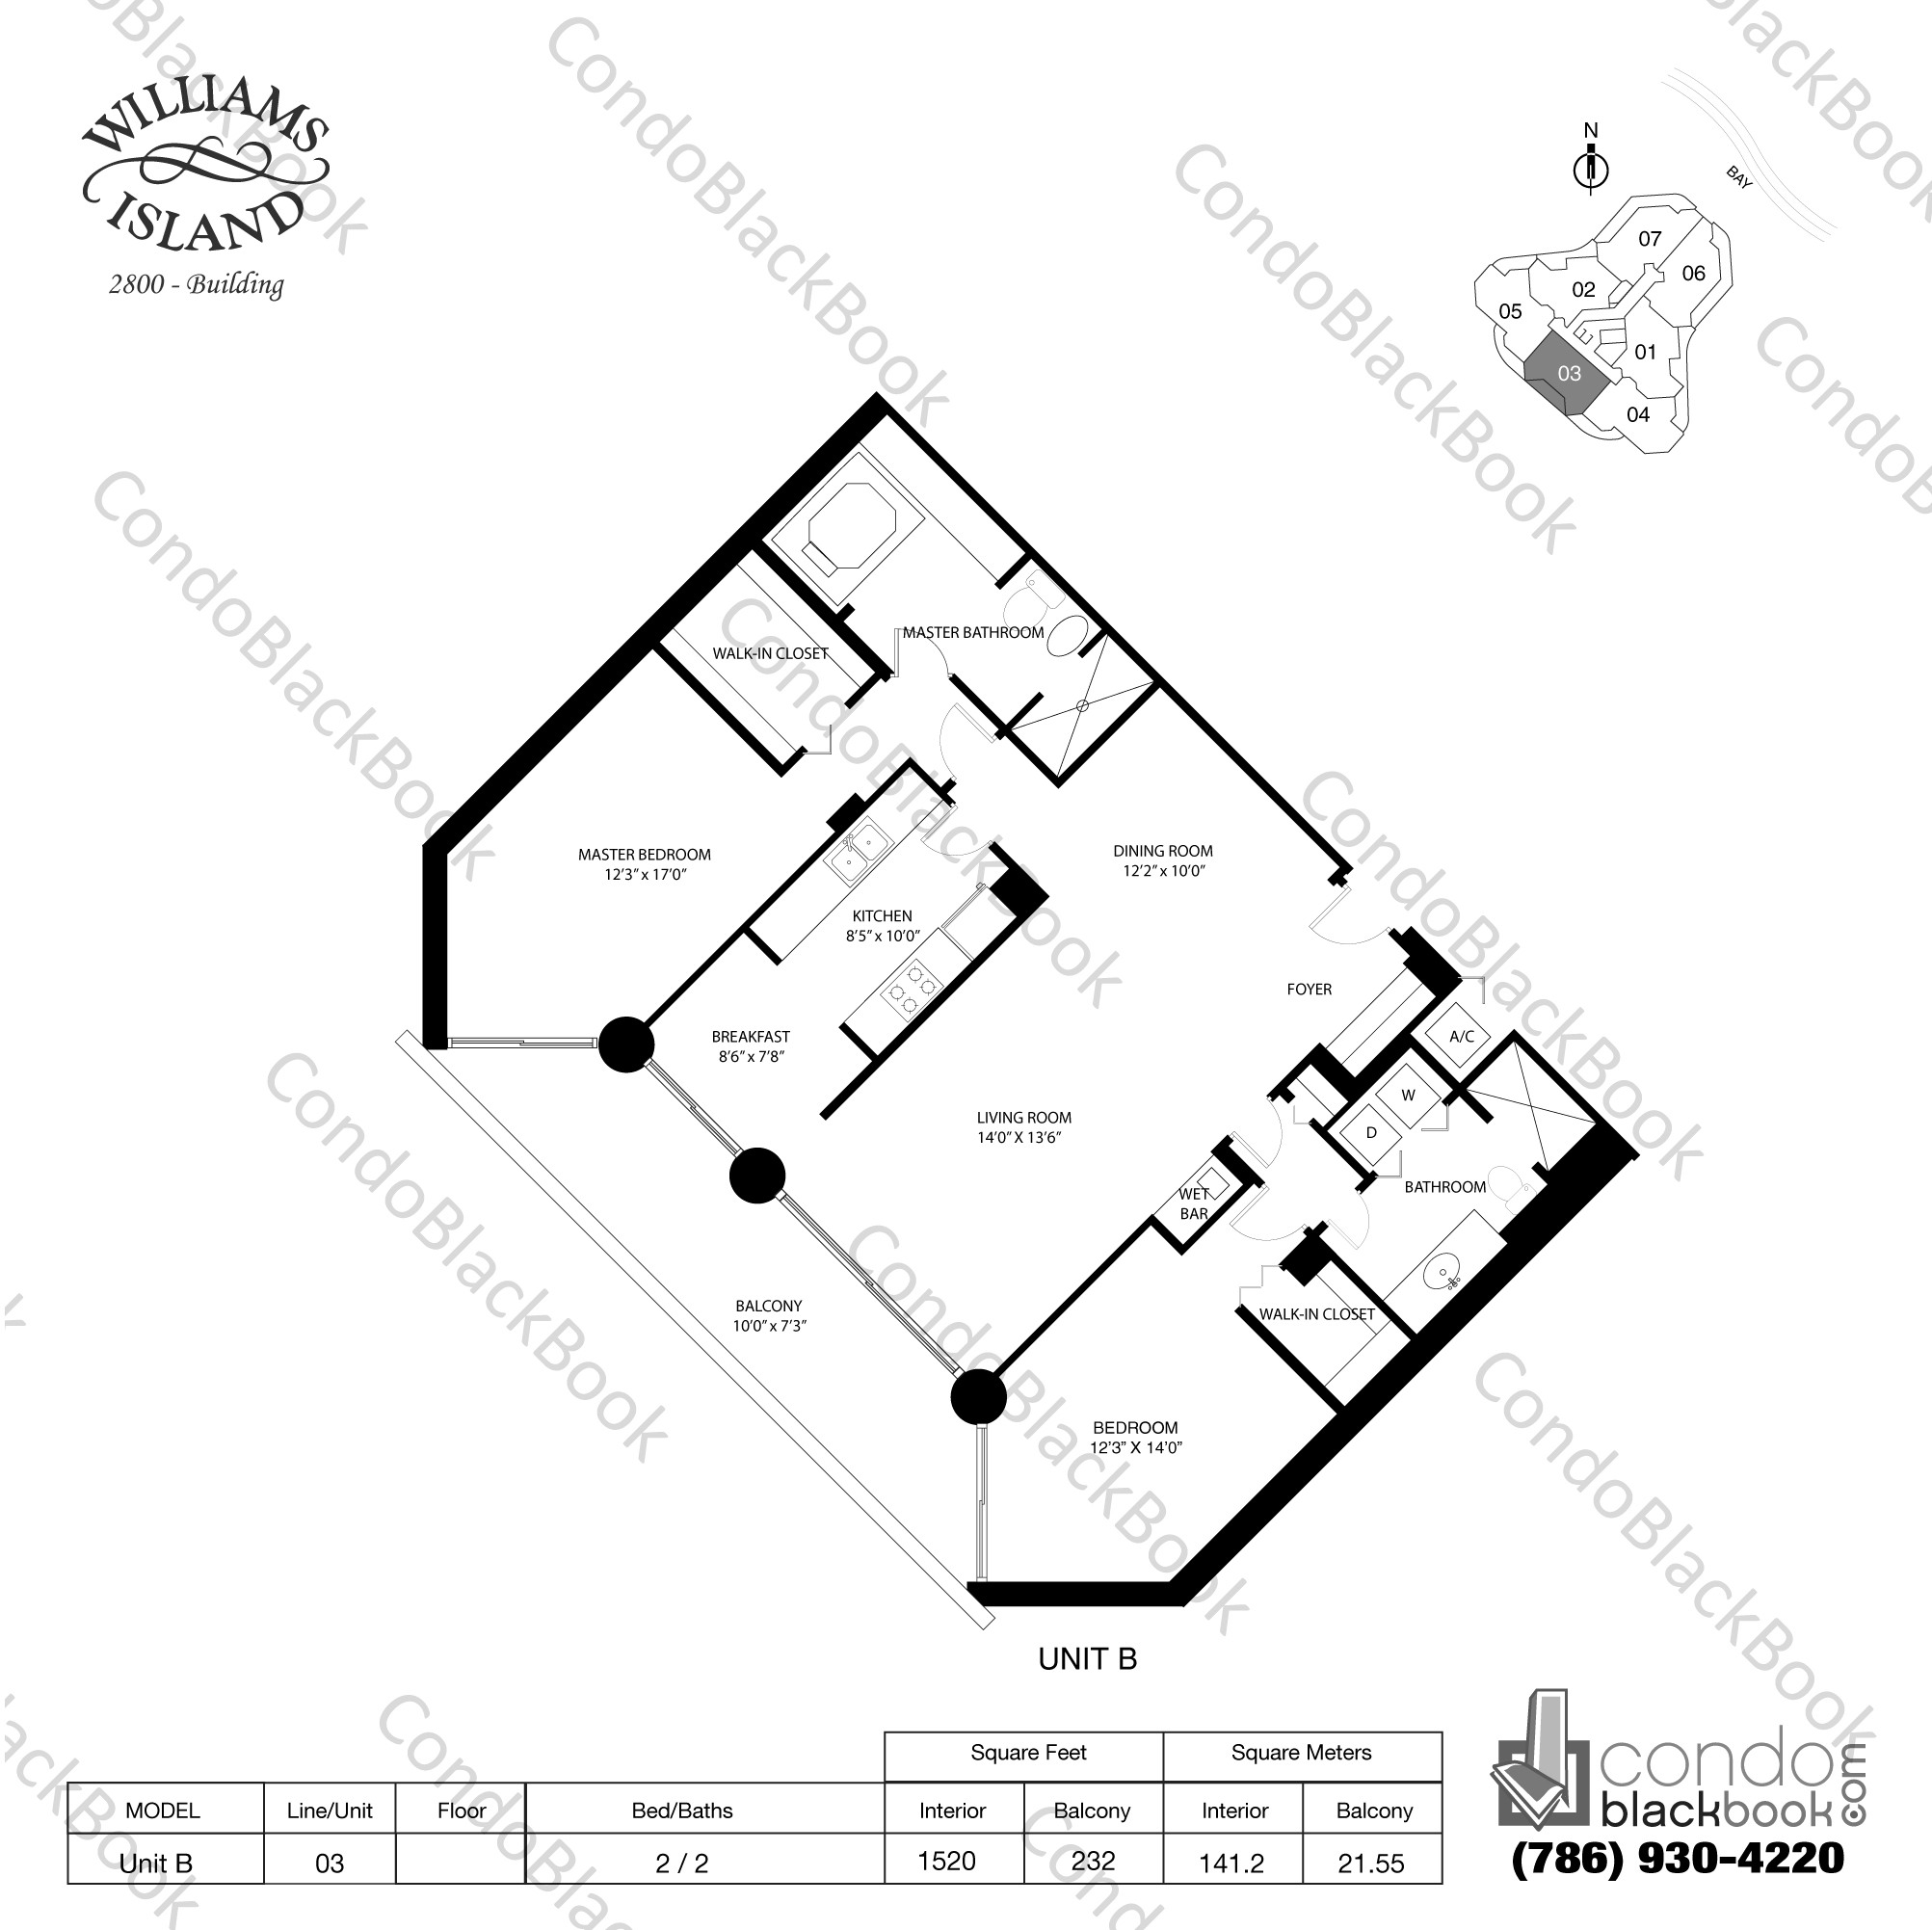 Floor plan for Williams Island 2800 Aventura, model Unit B, line 03, 2 / 2 bedrooms, 1520 sq ft